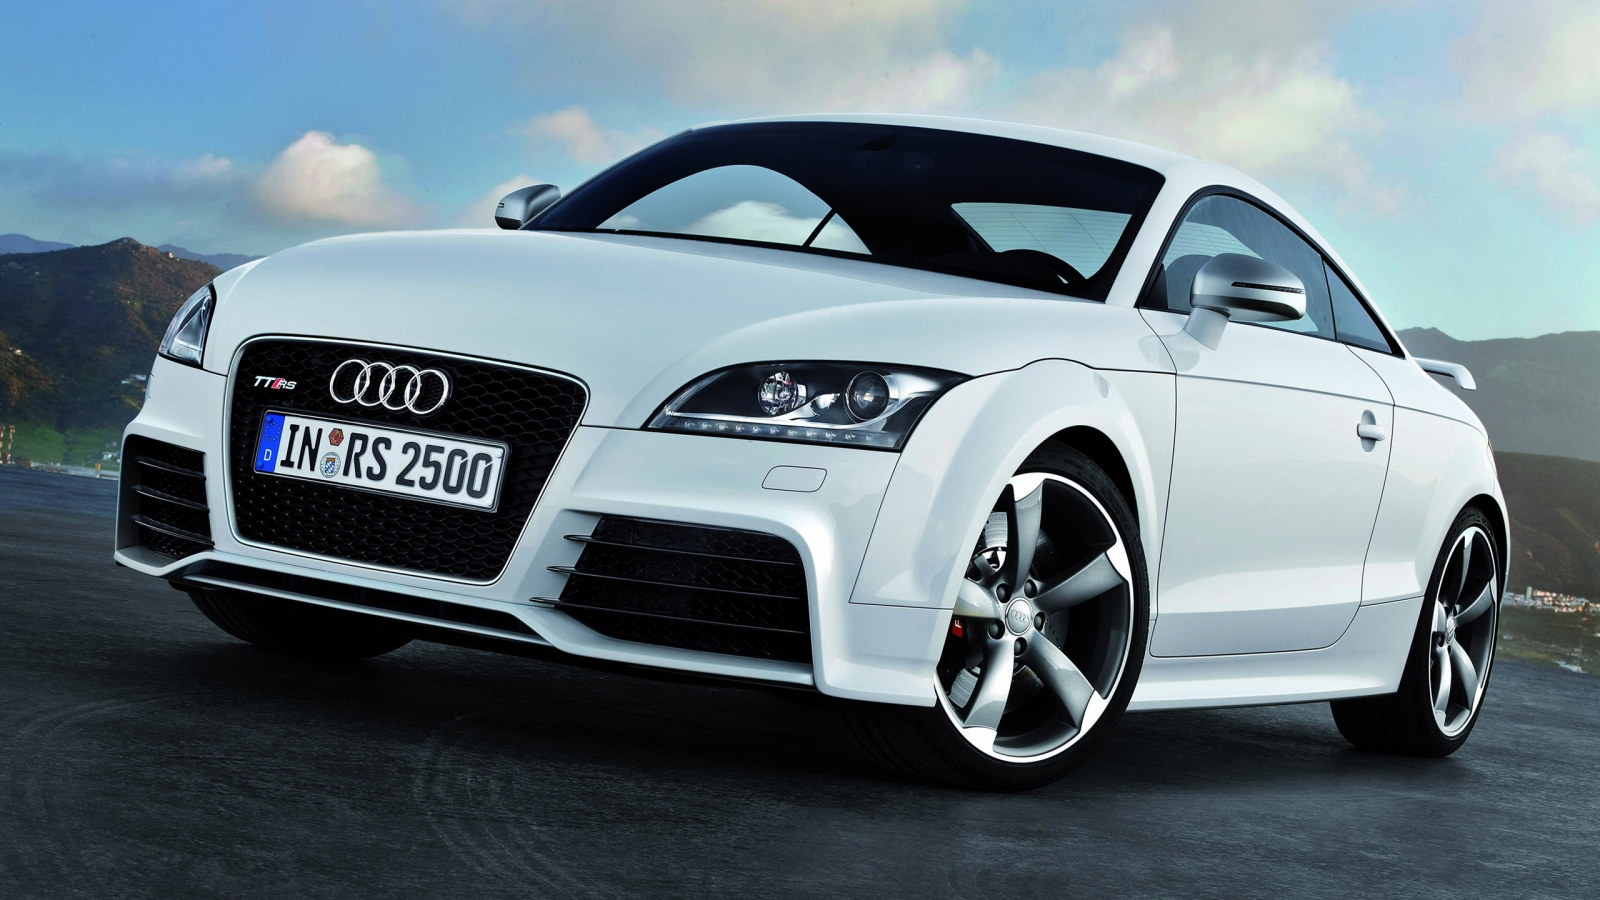 2012 Audi TT RS for 1600 x 900 HDTV resolution